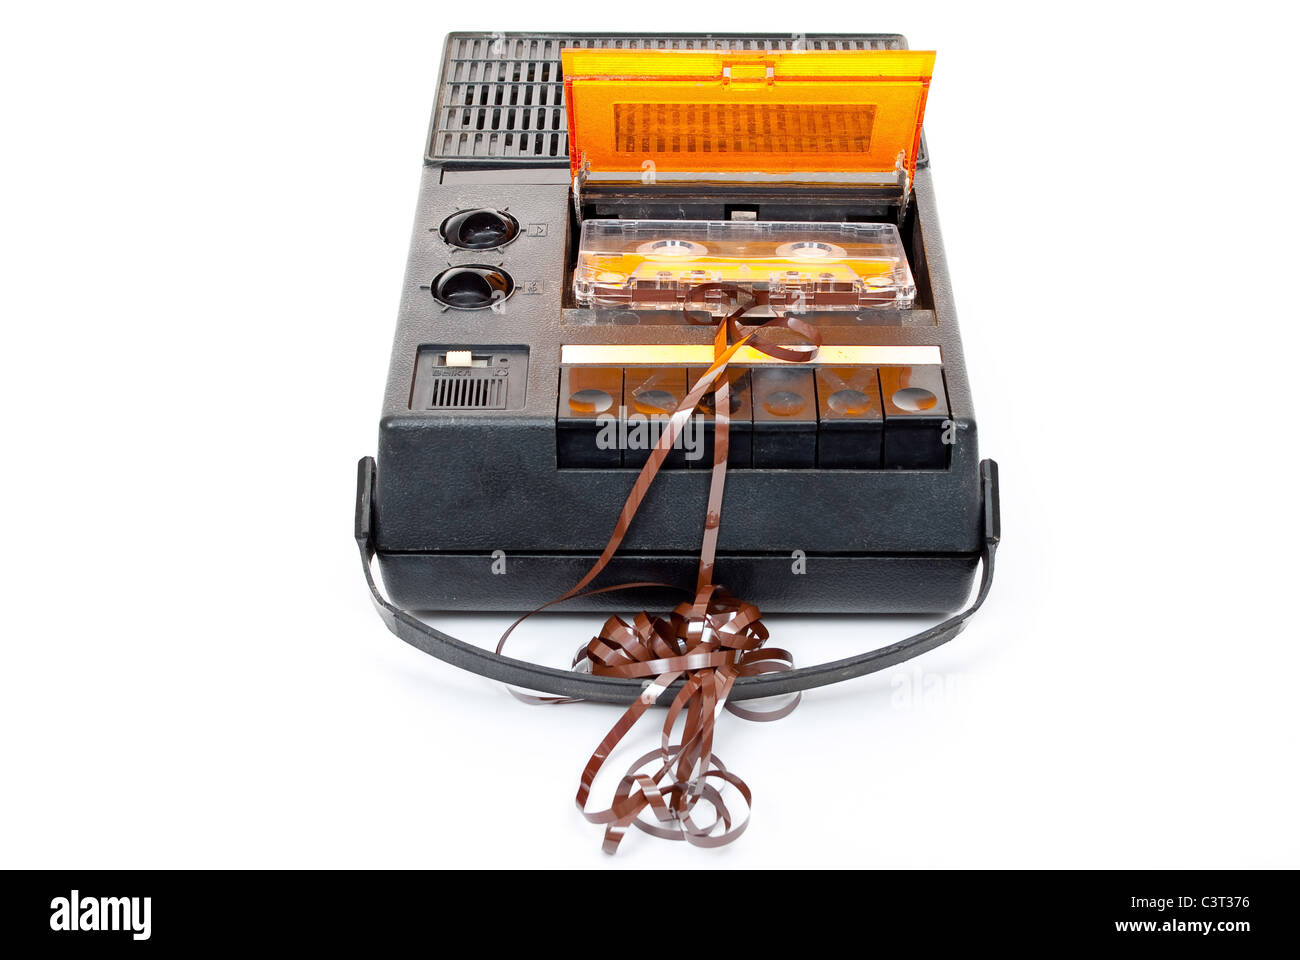 Magnetic audio tape cassette recorder - Stock Image